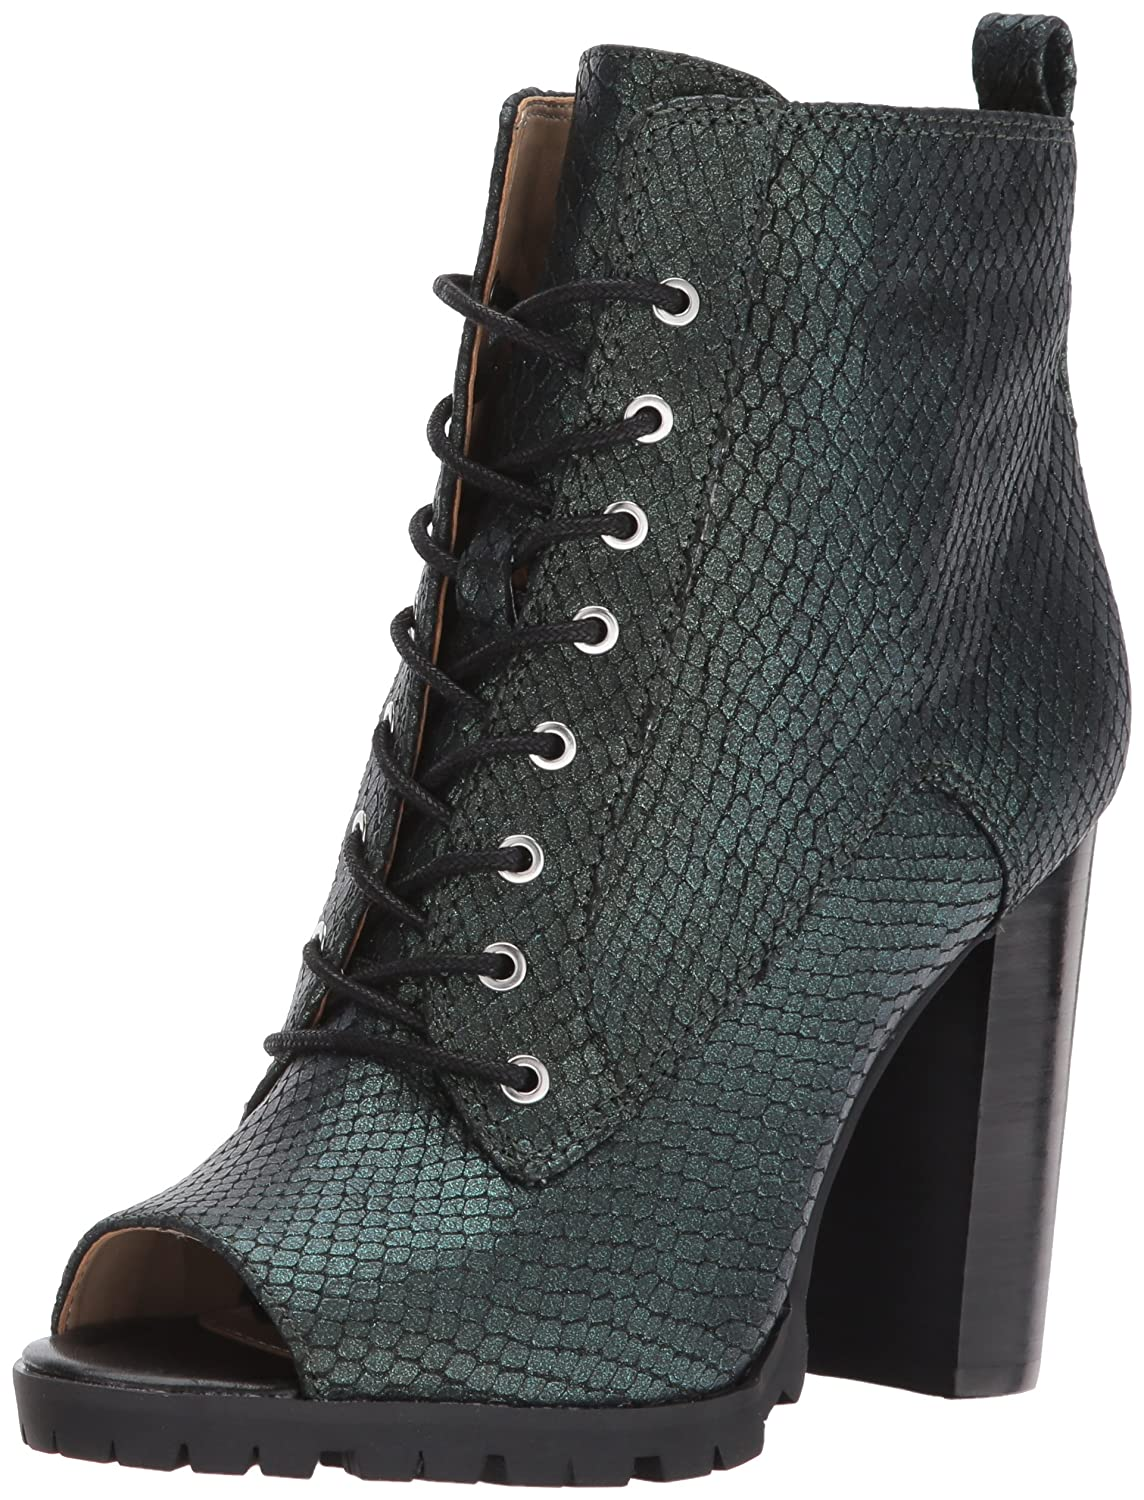 Katy Perry Women's The Monica Ankle Boot B06XD8XBCM 11 B(M) US|Forest Green